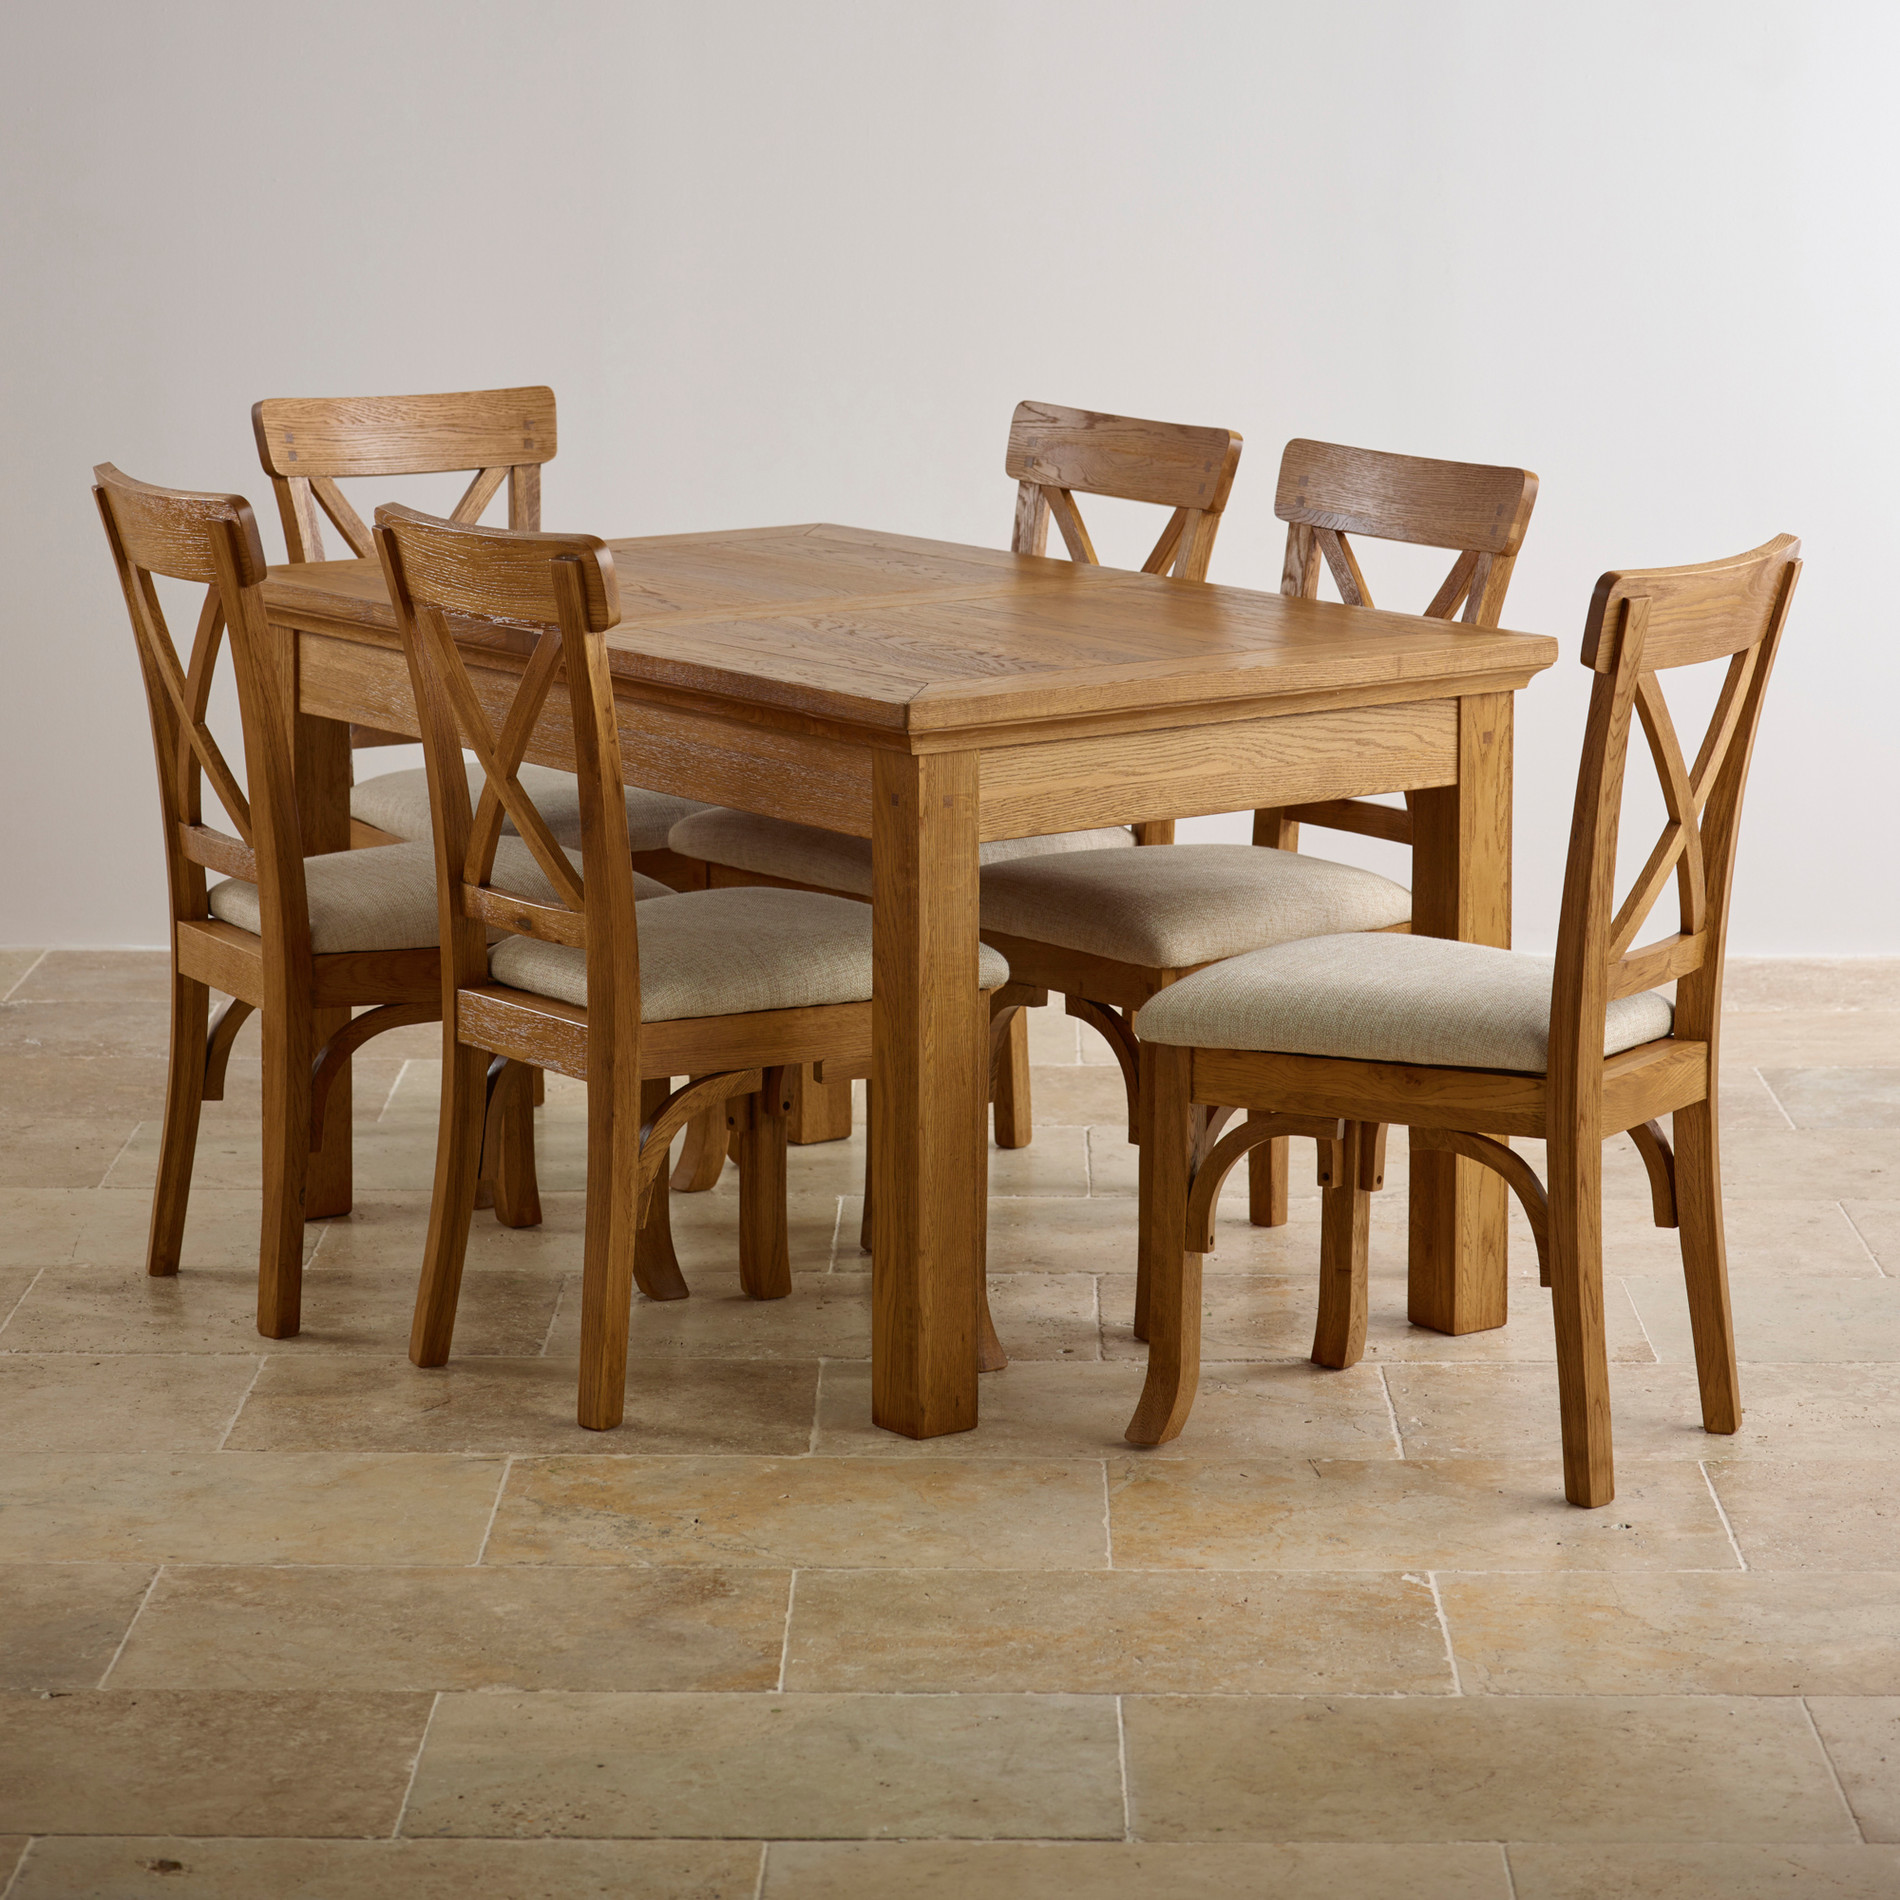 The Taunton Range of Brushed Oak Furniture